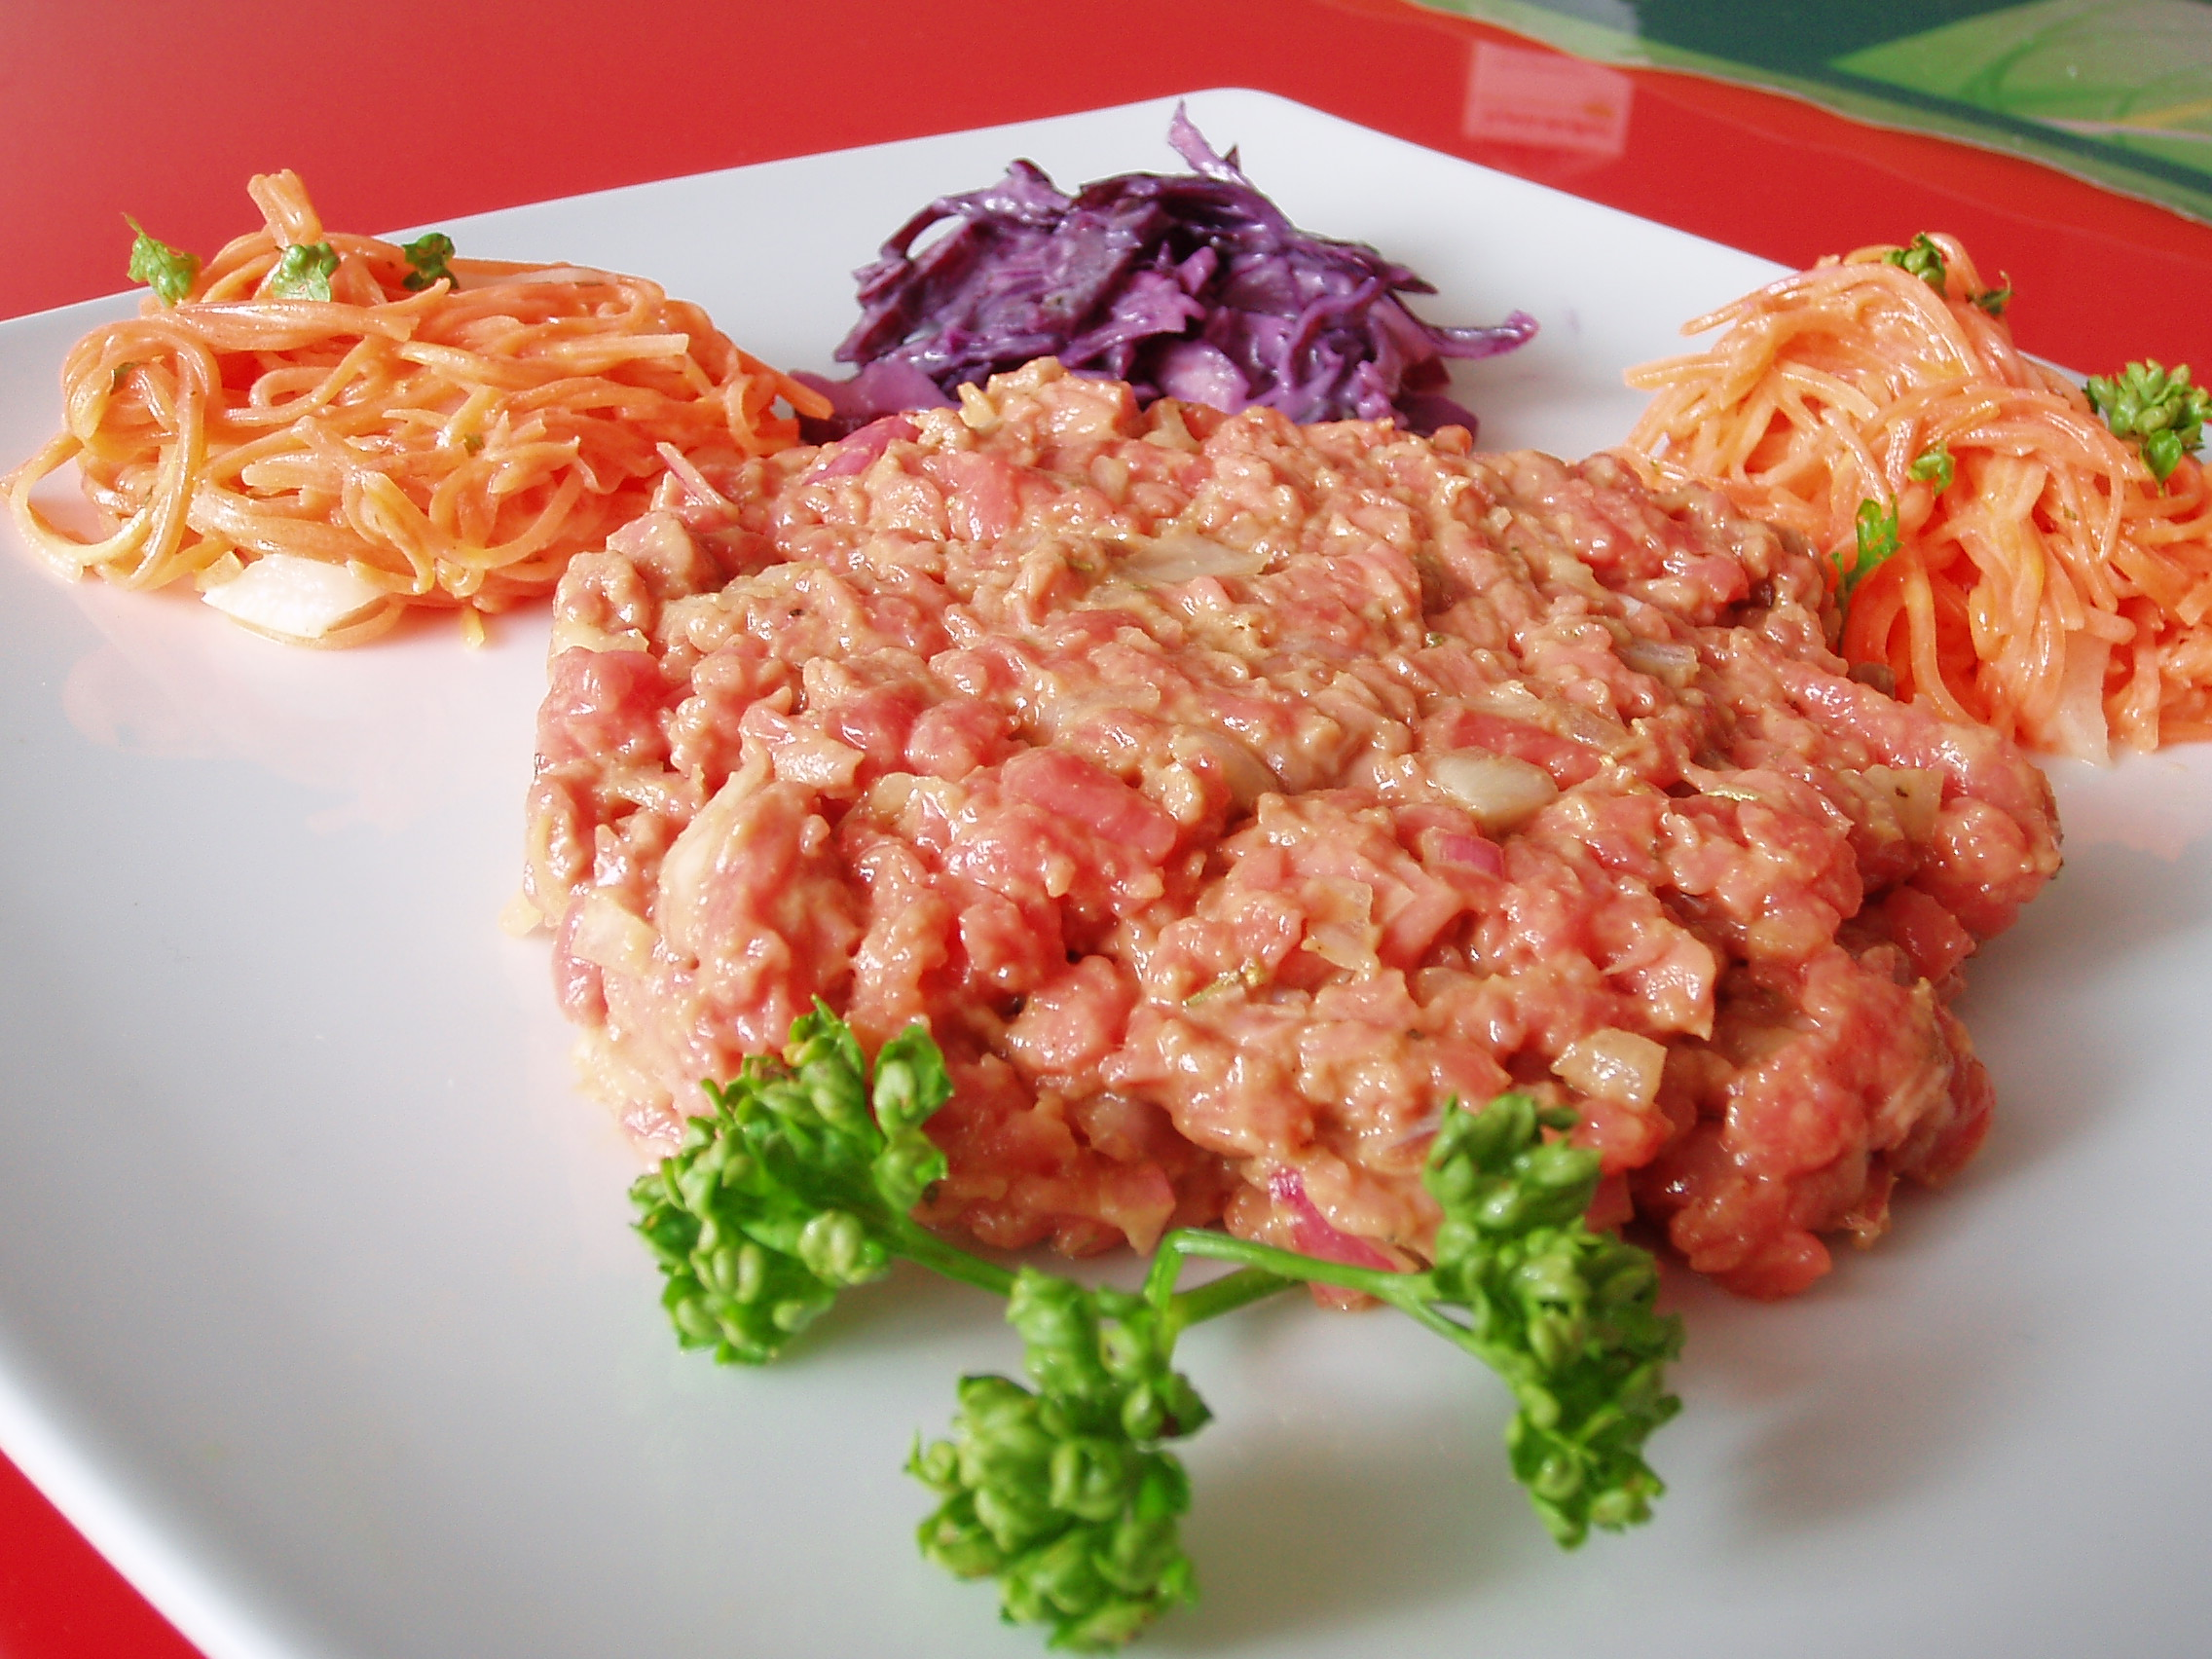 Steak tartare à la sauce soja